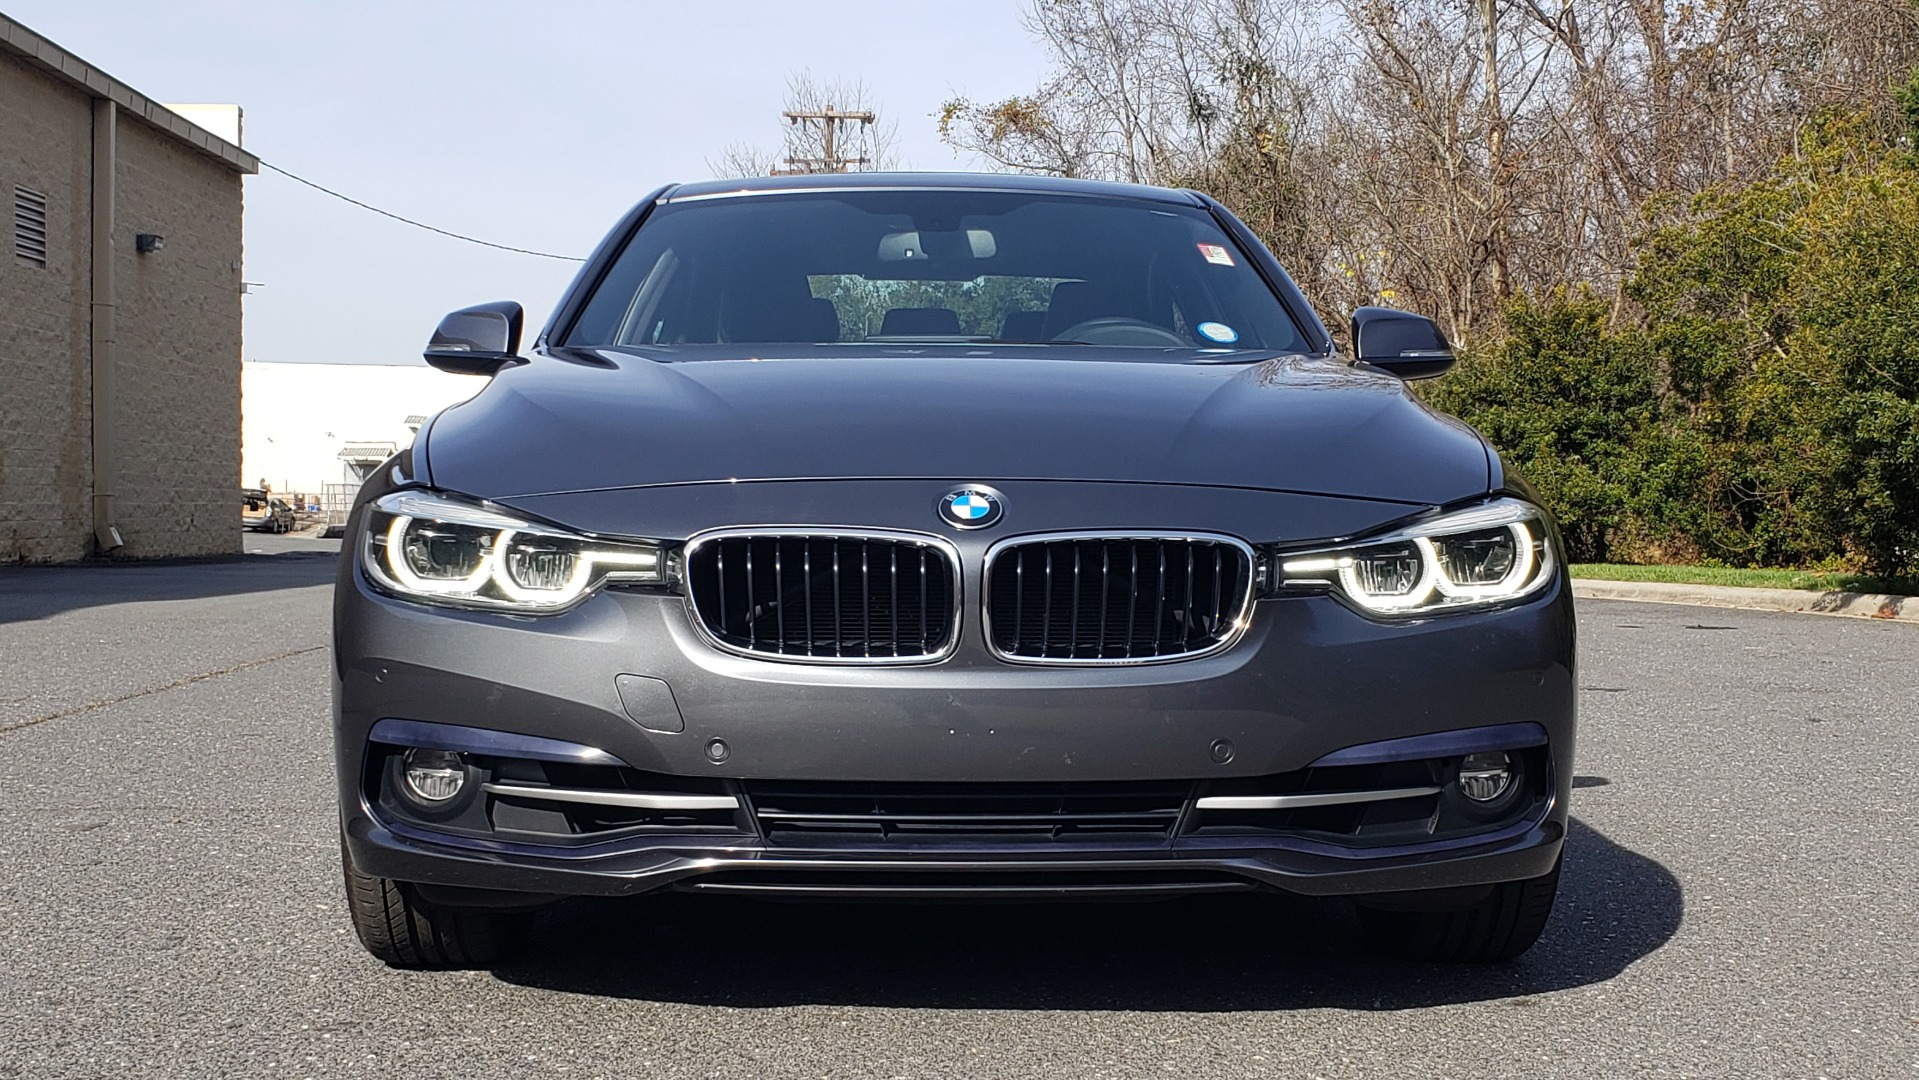 Used 2017 BMW 3 SERIES 330I PREMIUM / DRVR ASST / NAV / SUNROOF / HTD STS / REARVIEW for sale Sold at Formula Imports in Charlotte NC 28227 19